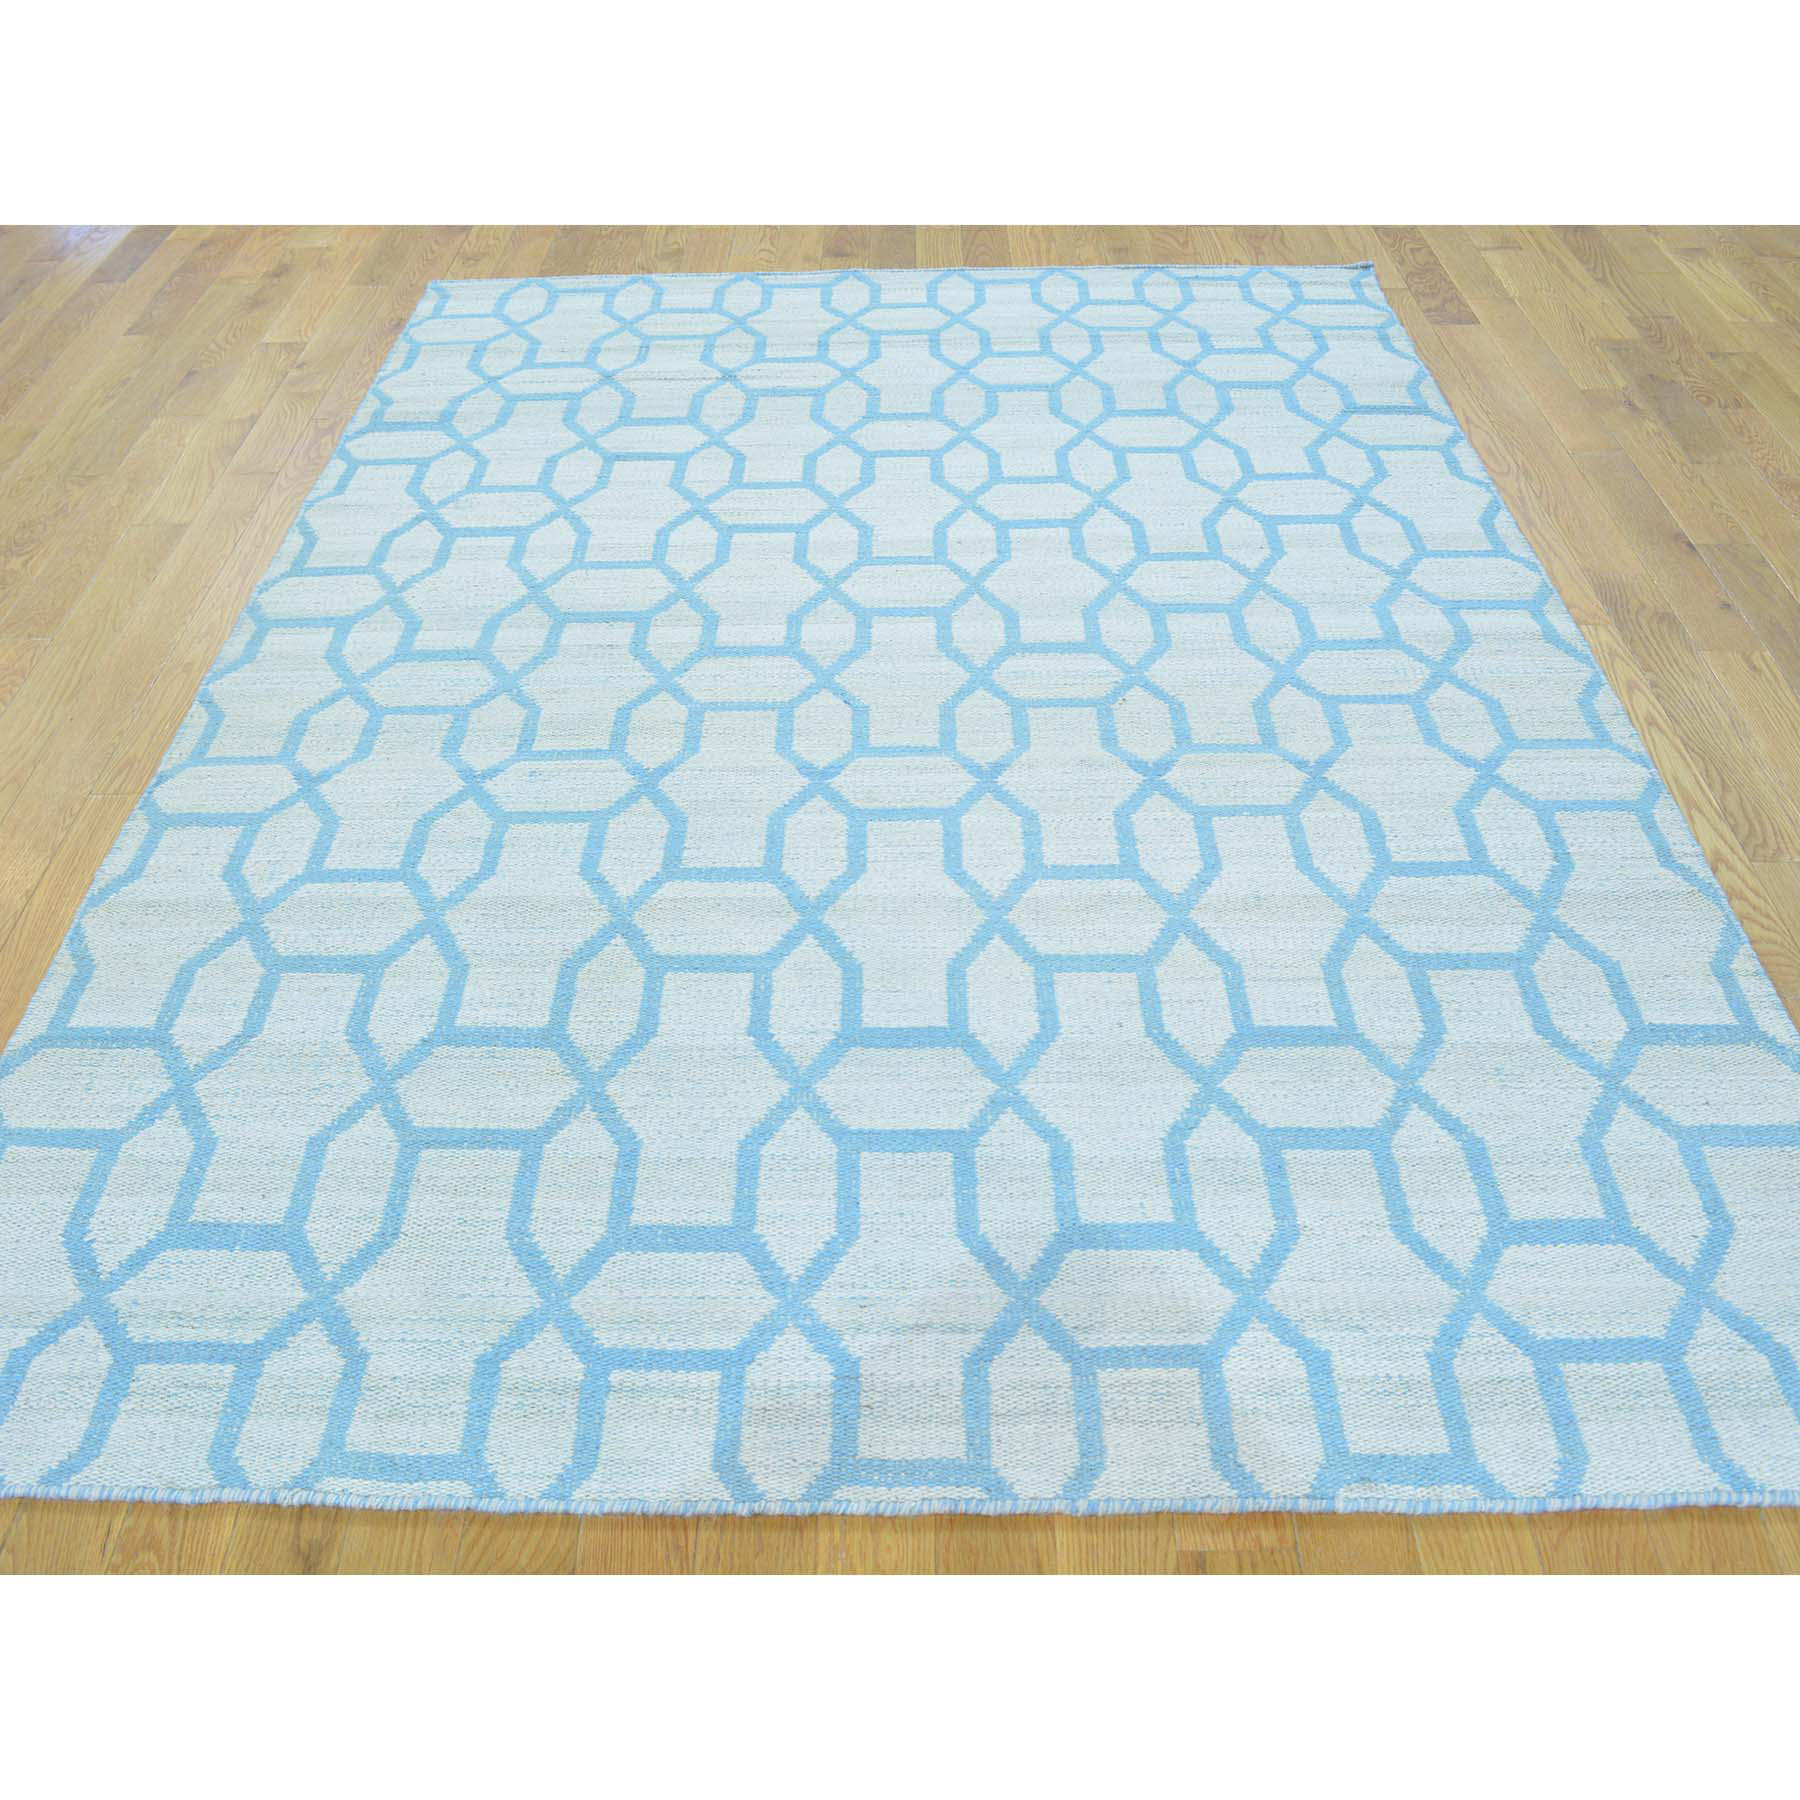 5-4 x7-3  Sky Blue Hand Woven Reversible Flat Weave Kilim Rug